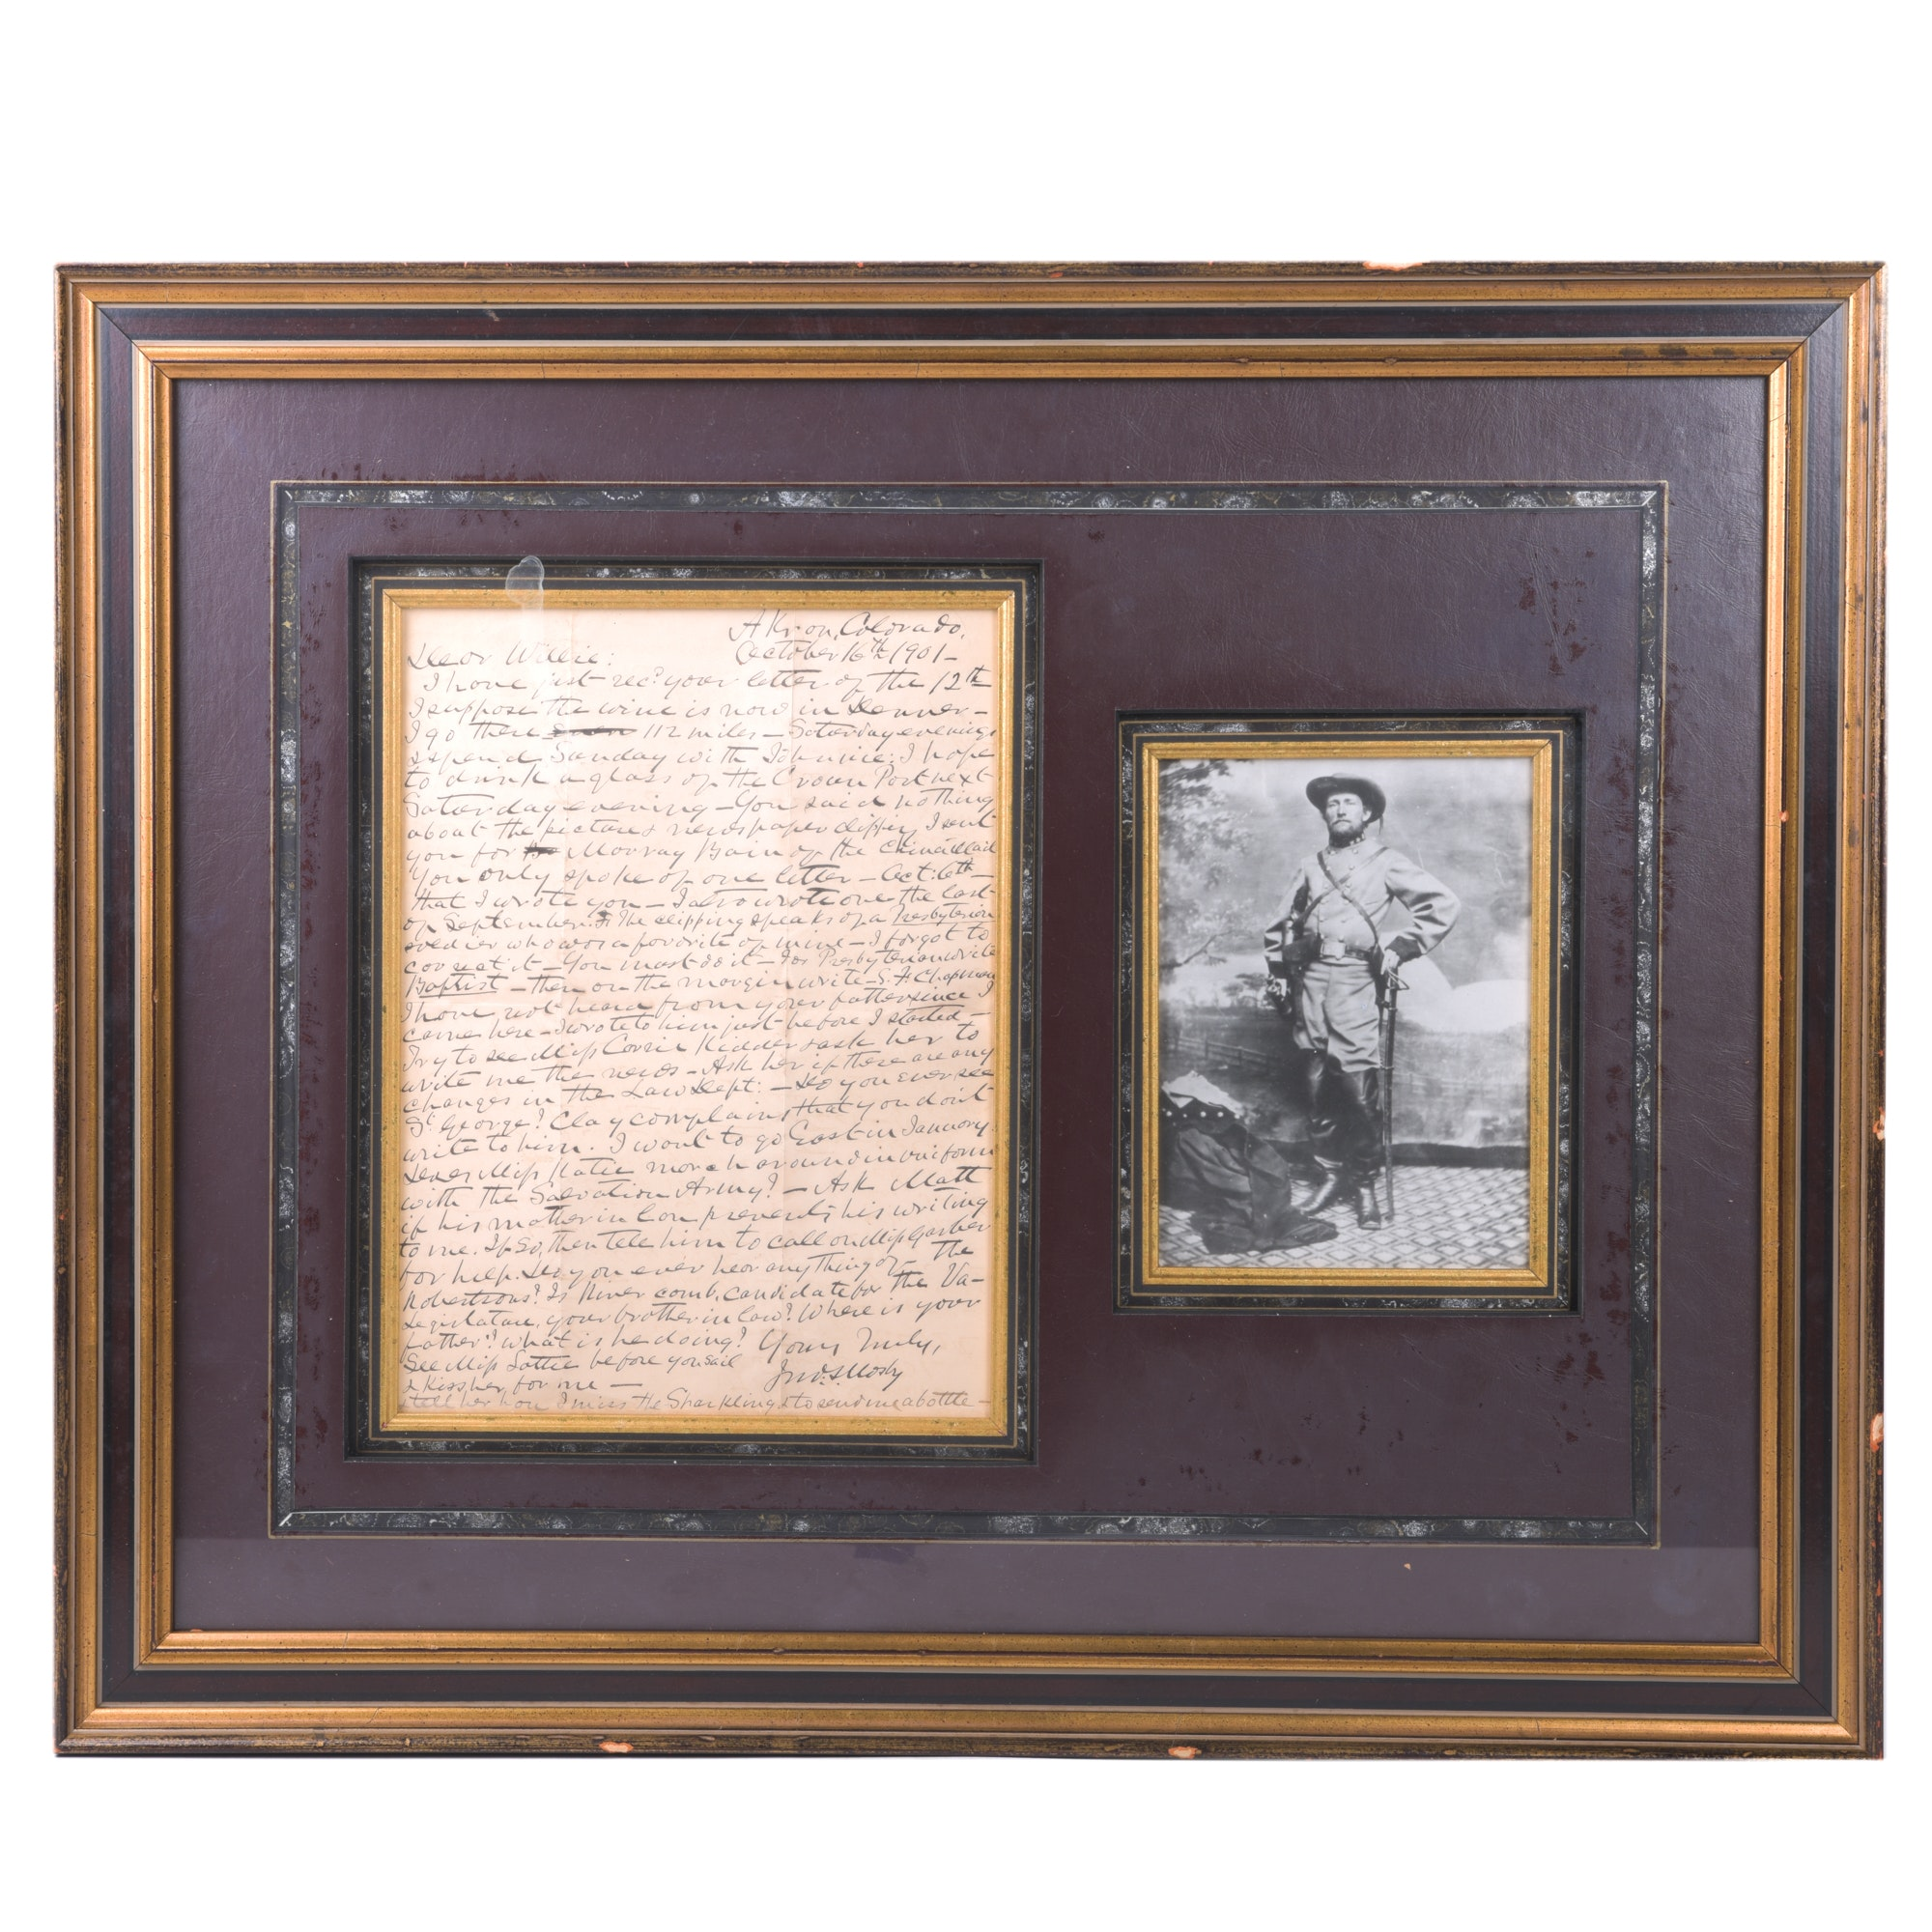 """John S. Mosby Signed Letter to William """"Willie"""" Chapman with Photograph"""